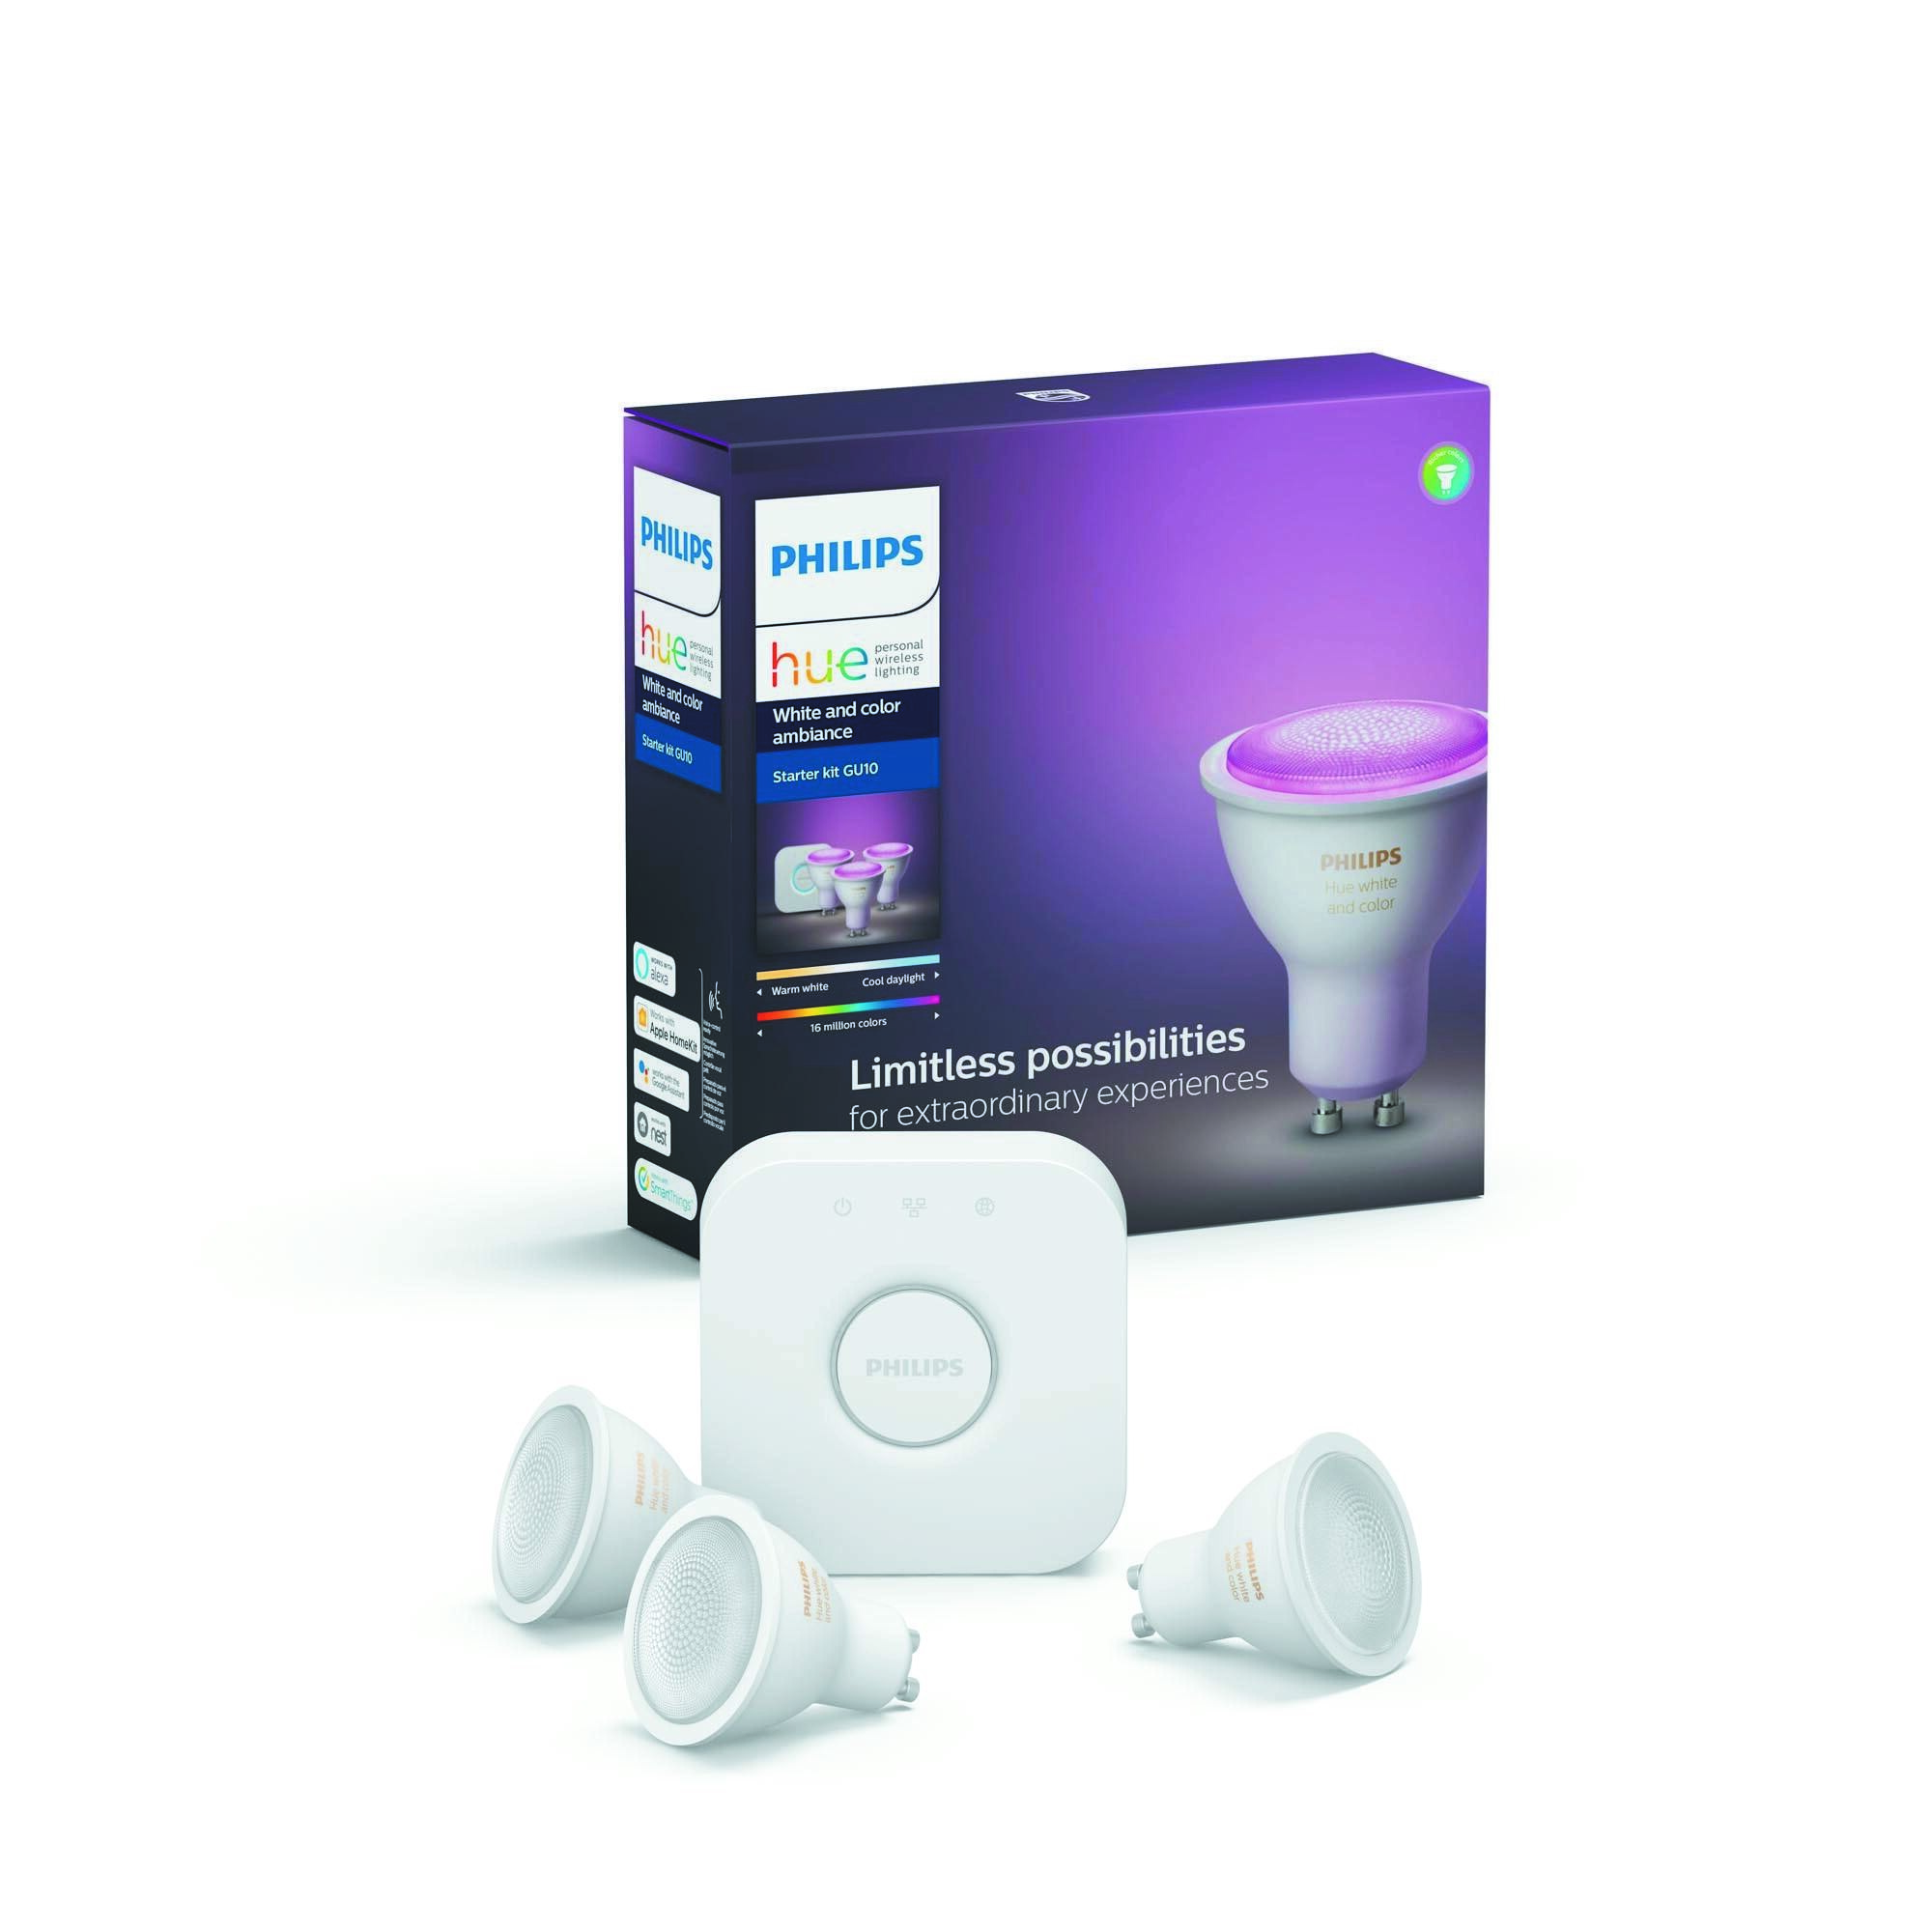 Philips HUE White and color ambiance GU10 6,5W 300lm 2000K-6500K Spot Transparant